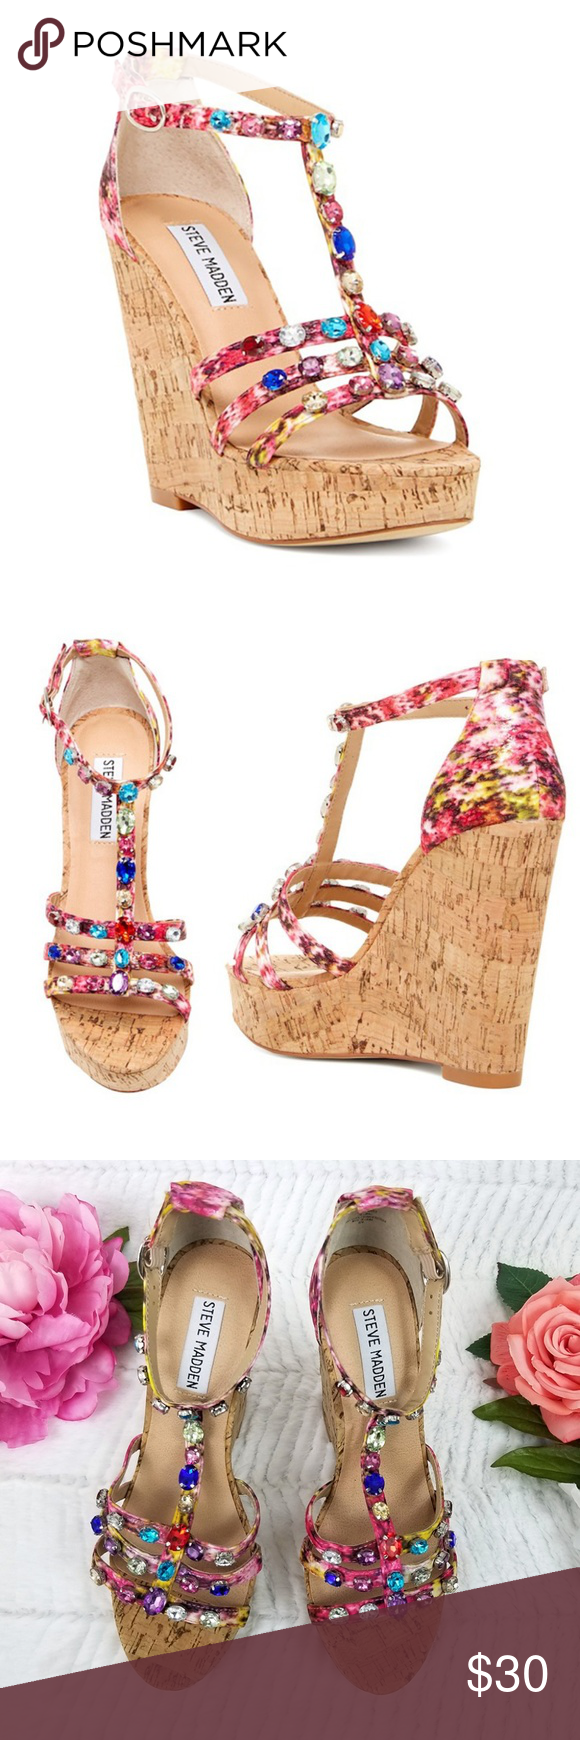 9b02967718679 Steve Madden Faara Wedge Jewel Sandal 7 M Pink Very pretty Steve Madden  Cork Wedge Jeweled